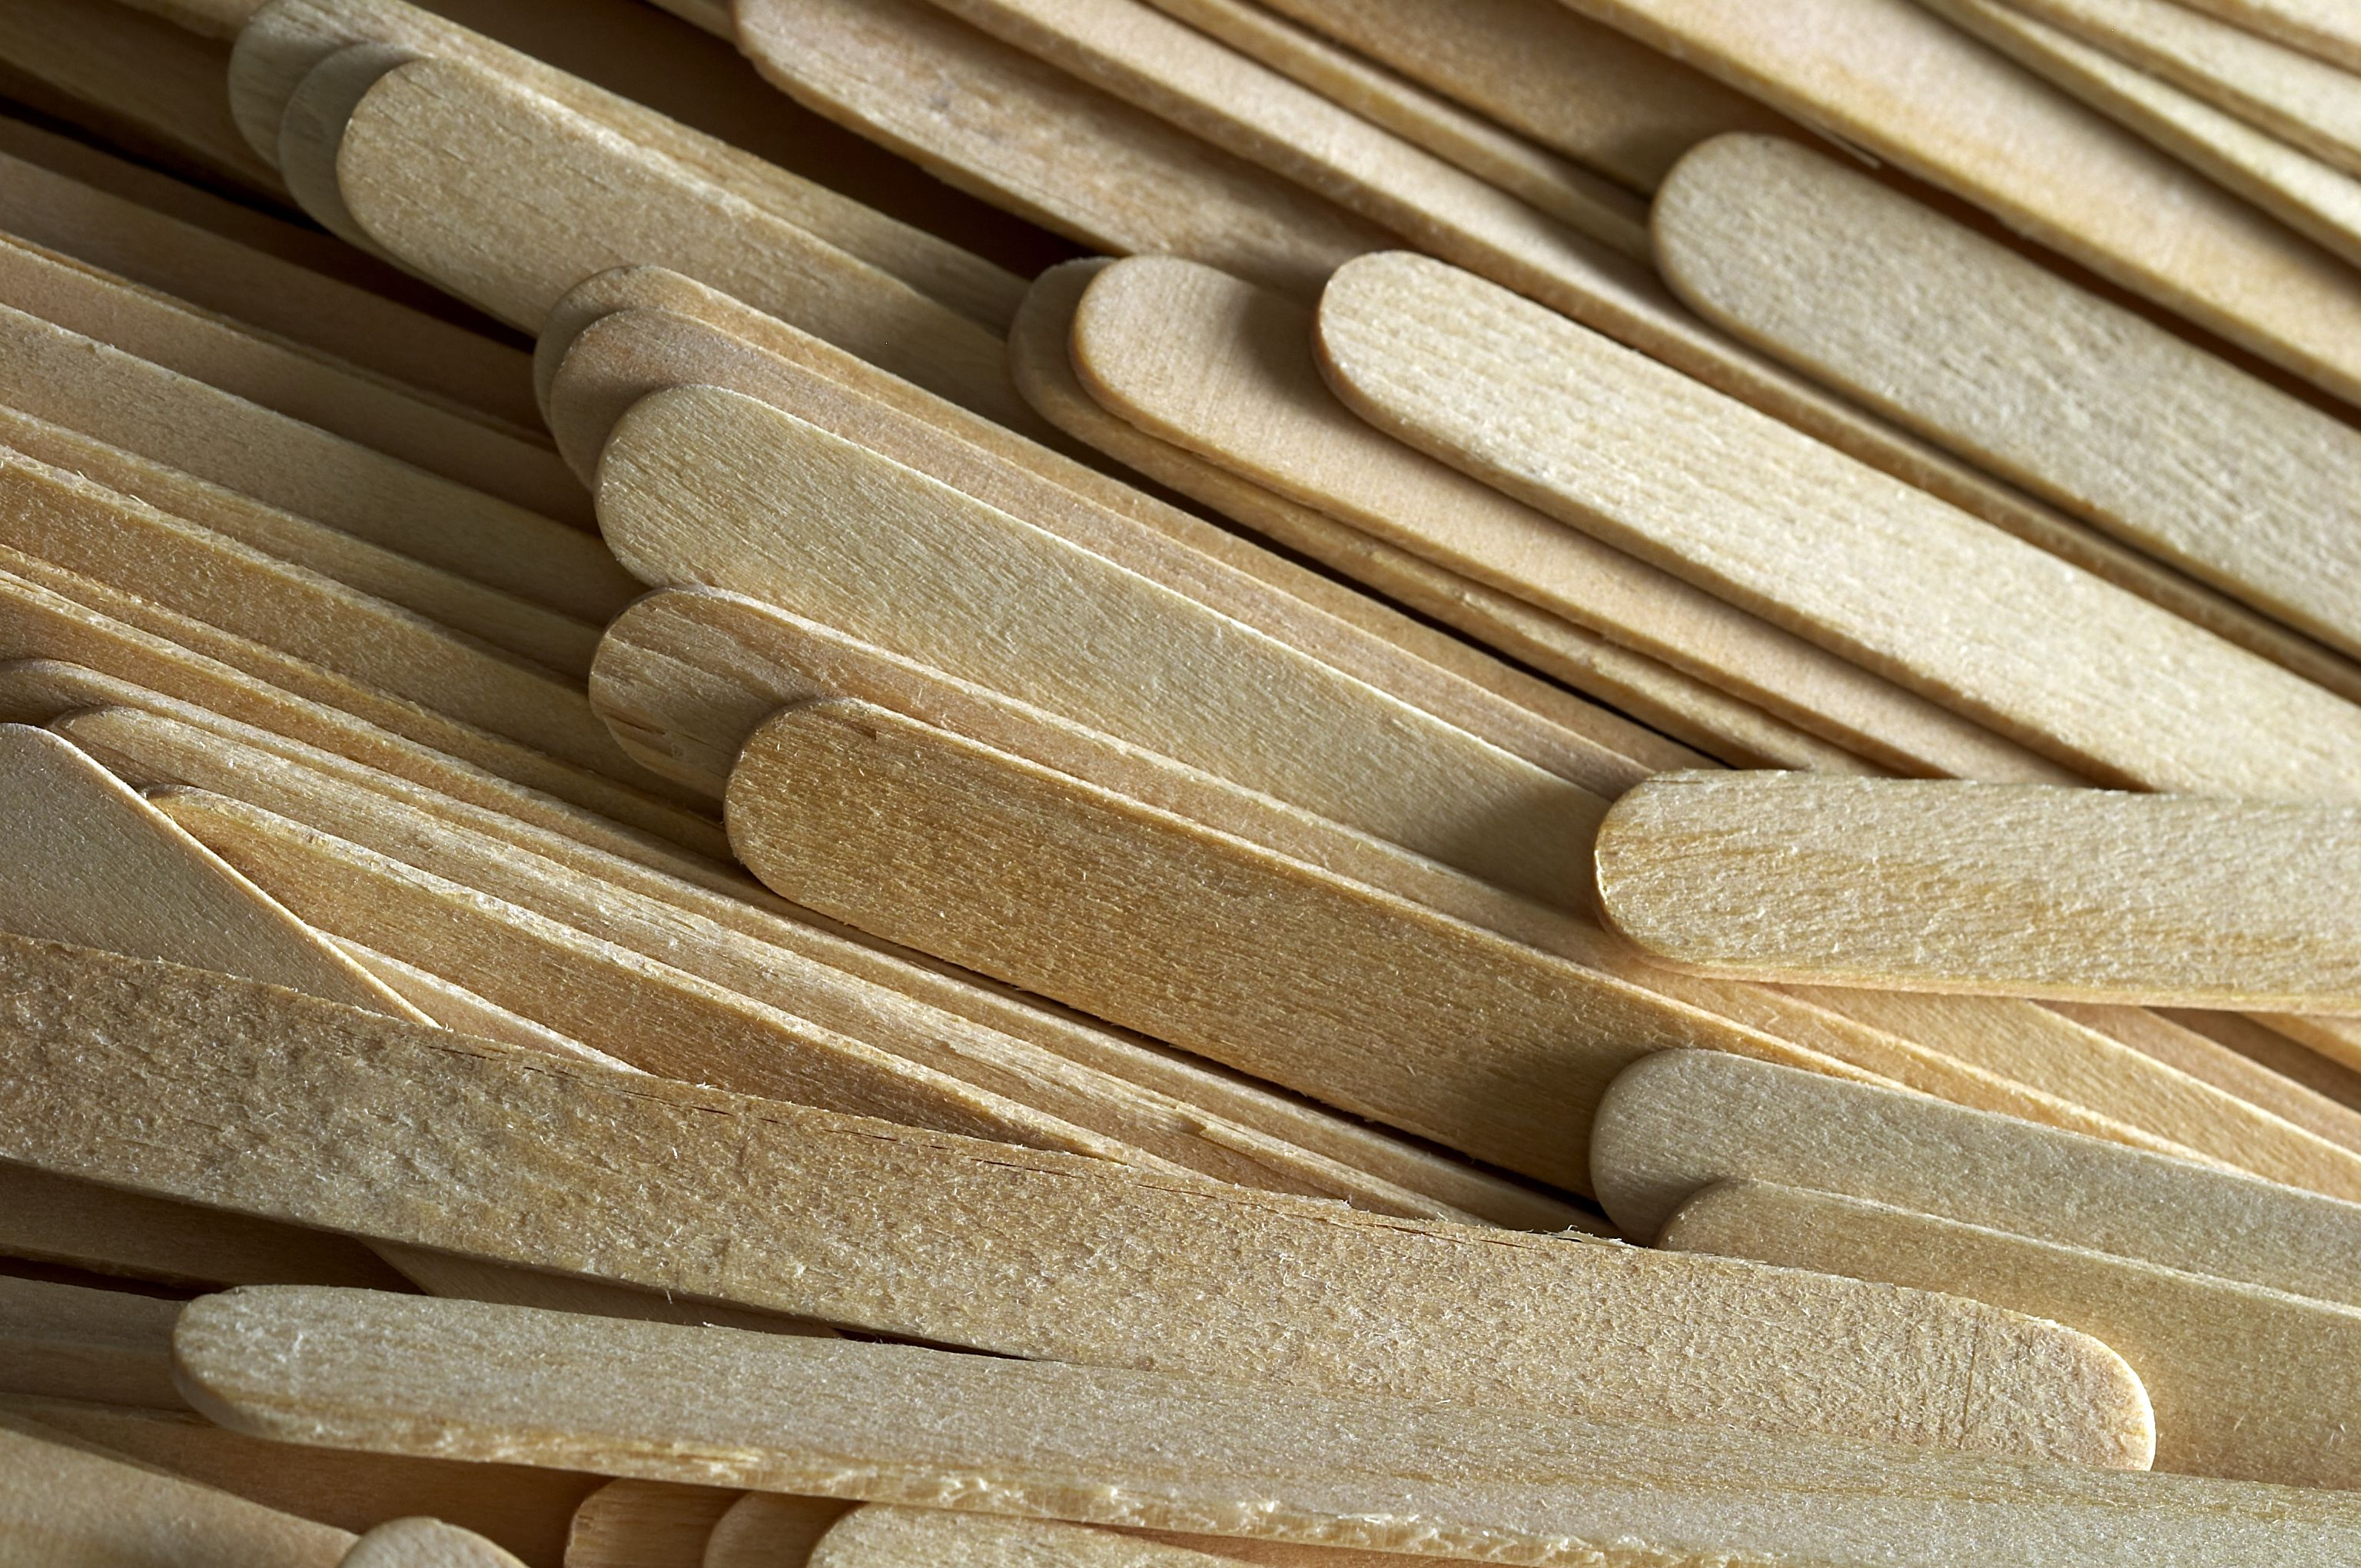 A collection of Popsicle sticks